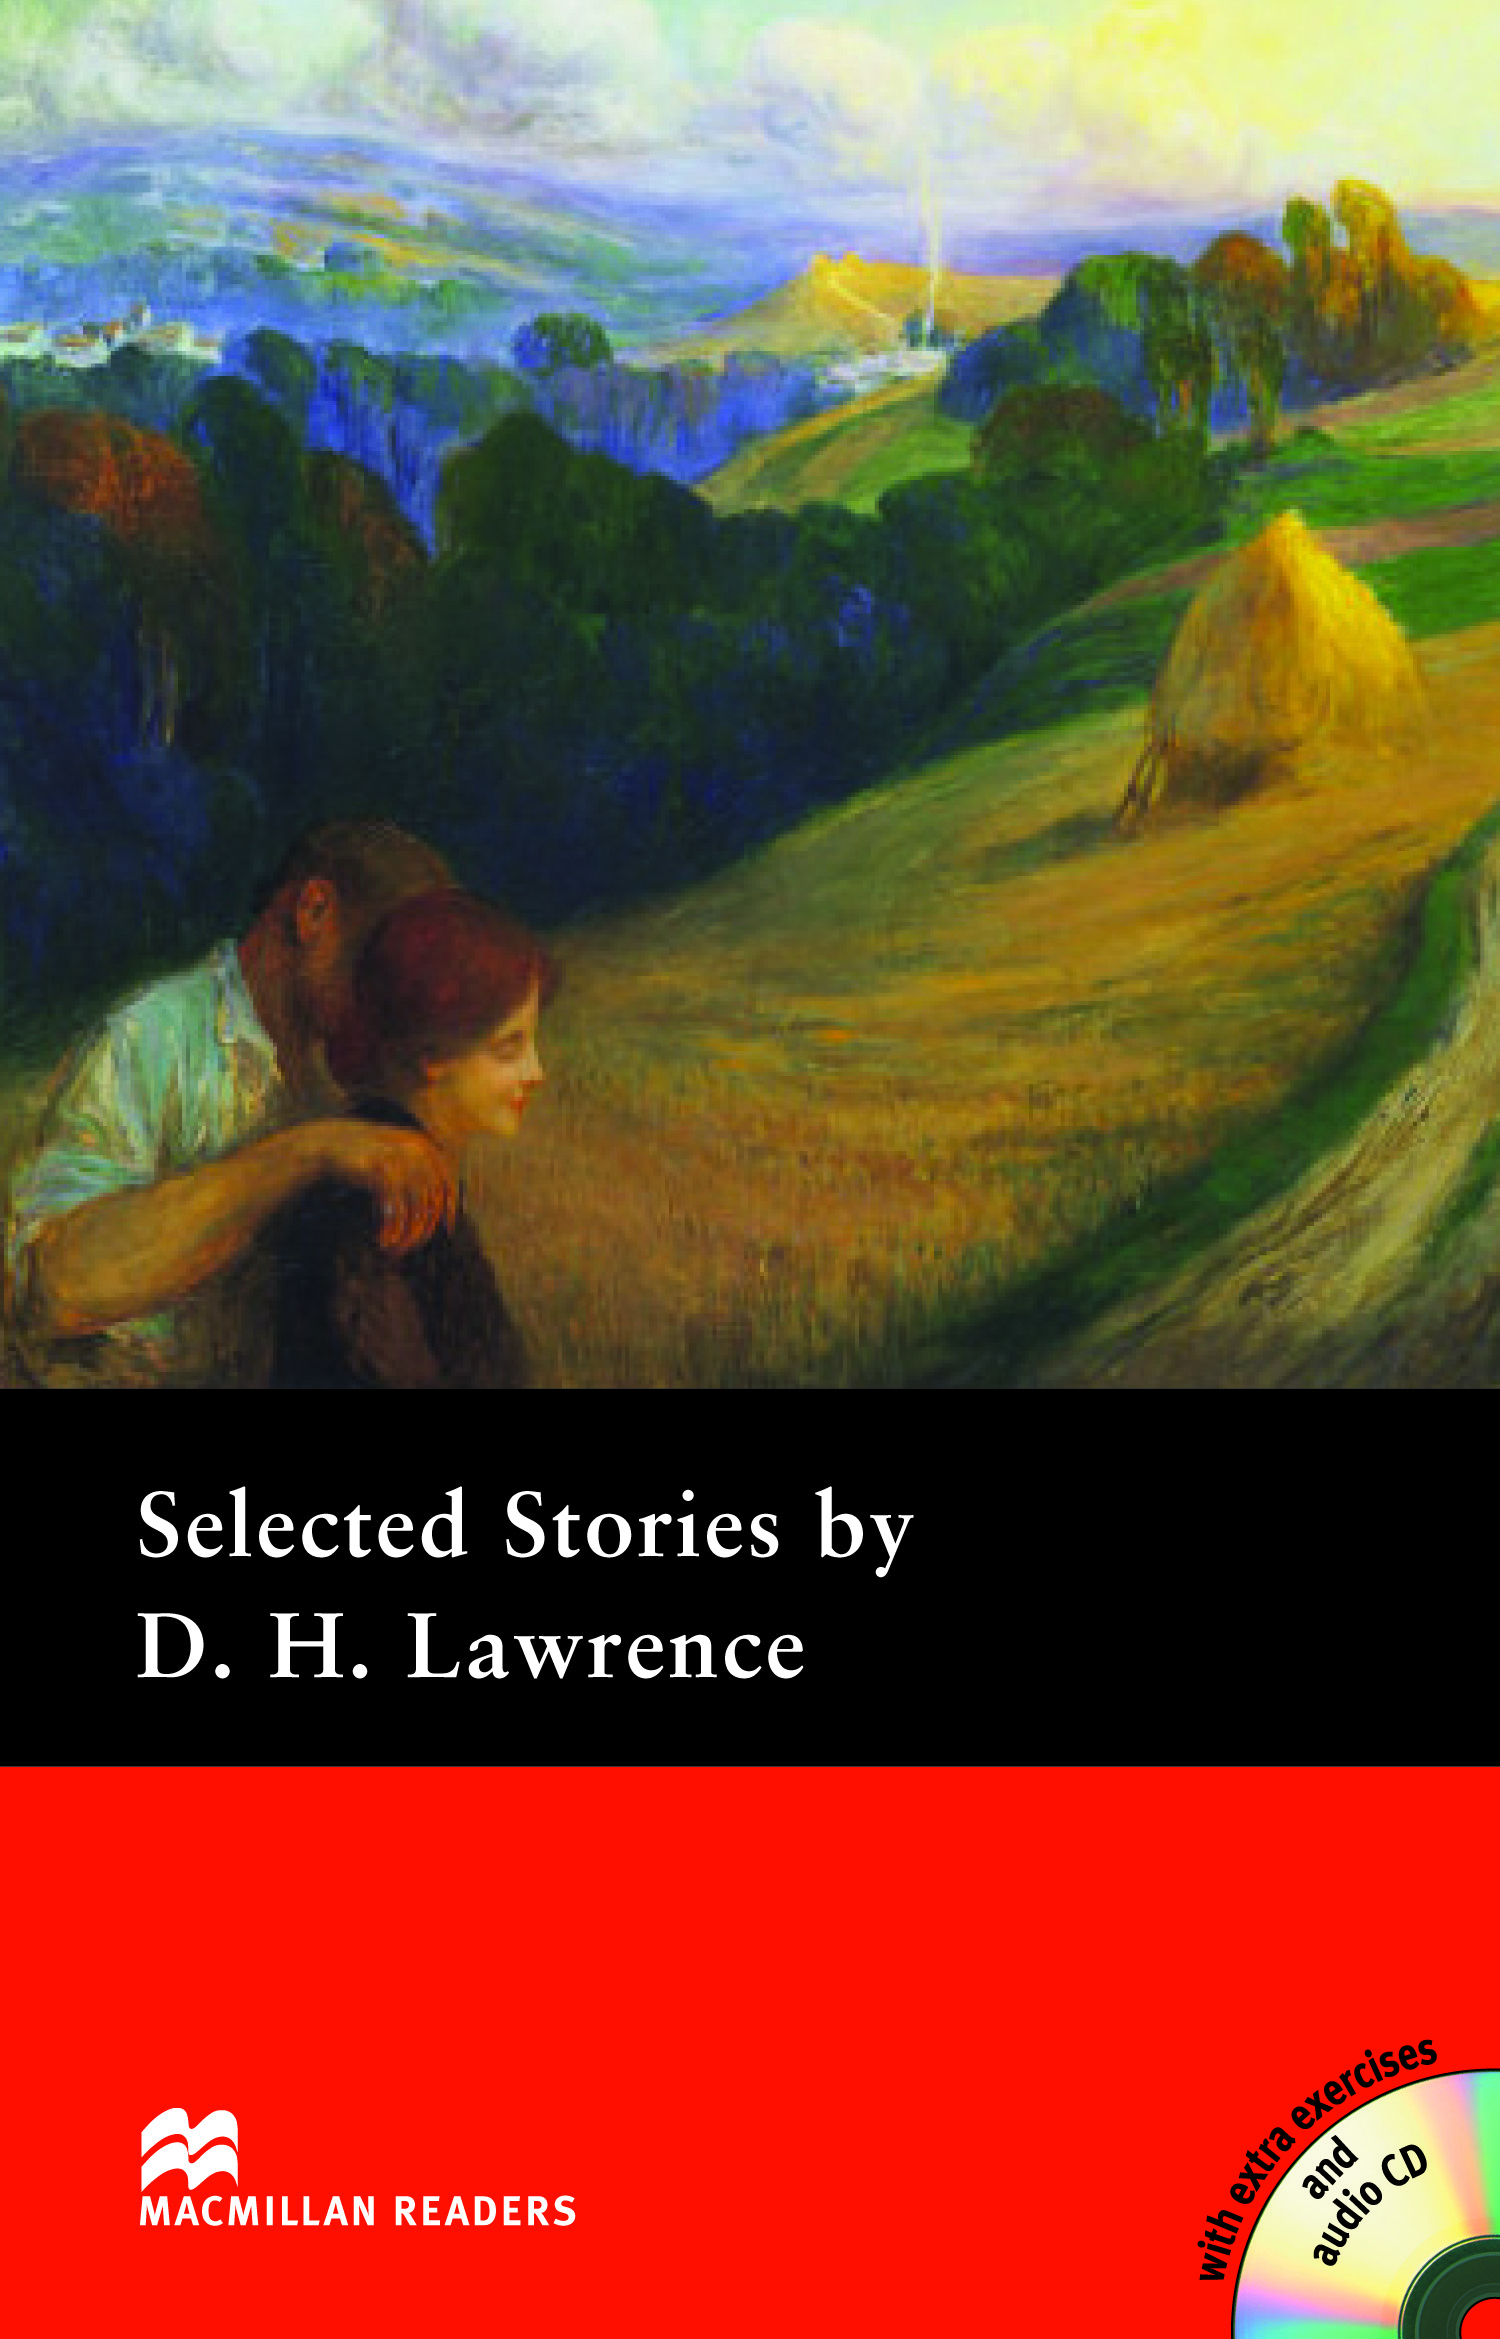 Macmillan Readers: Selected Stories by D. H. Lawrence Pack